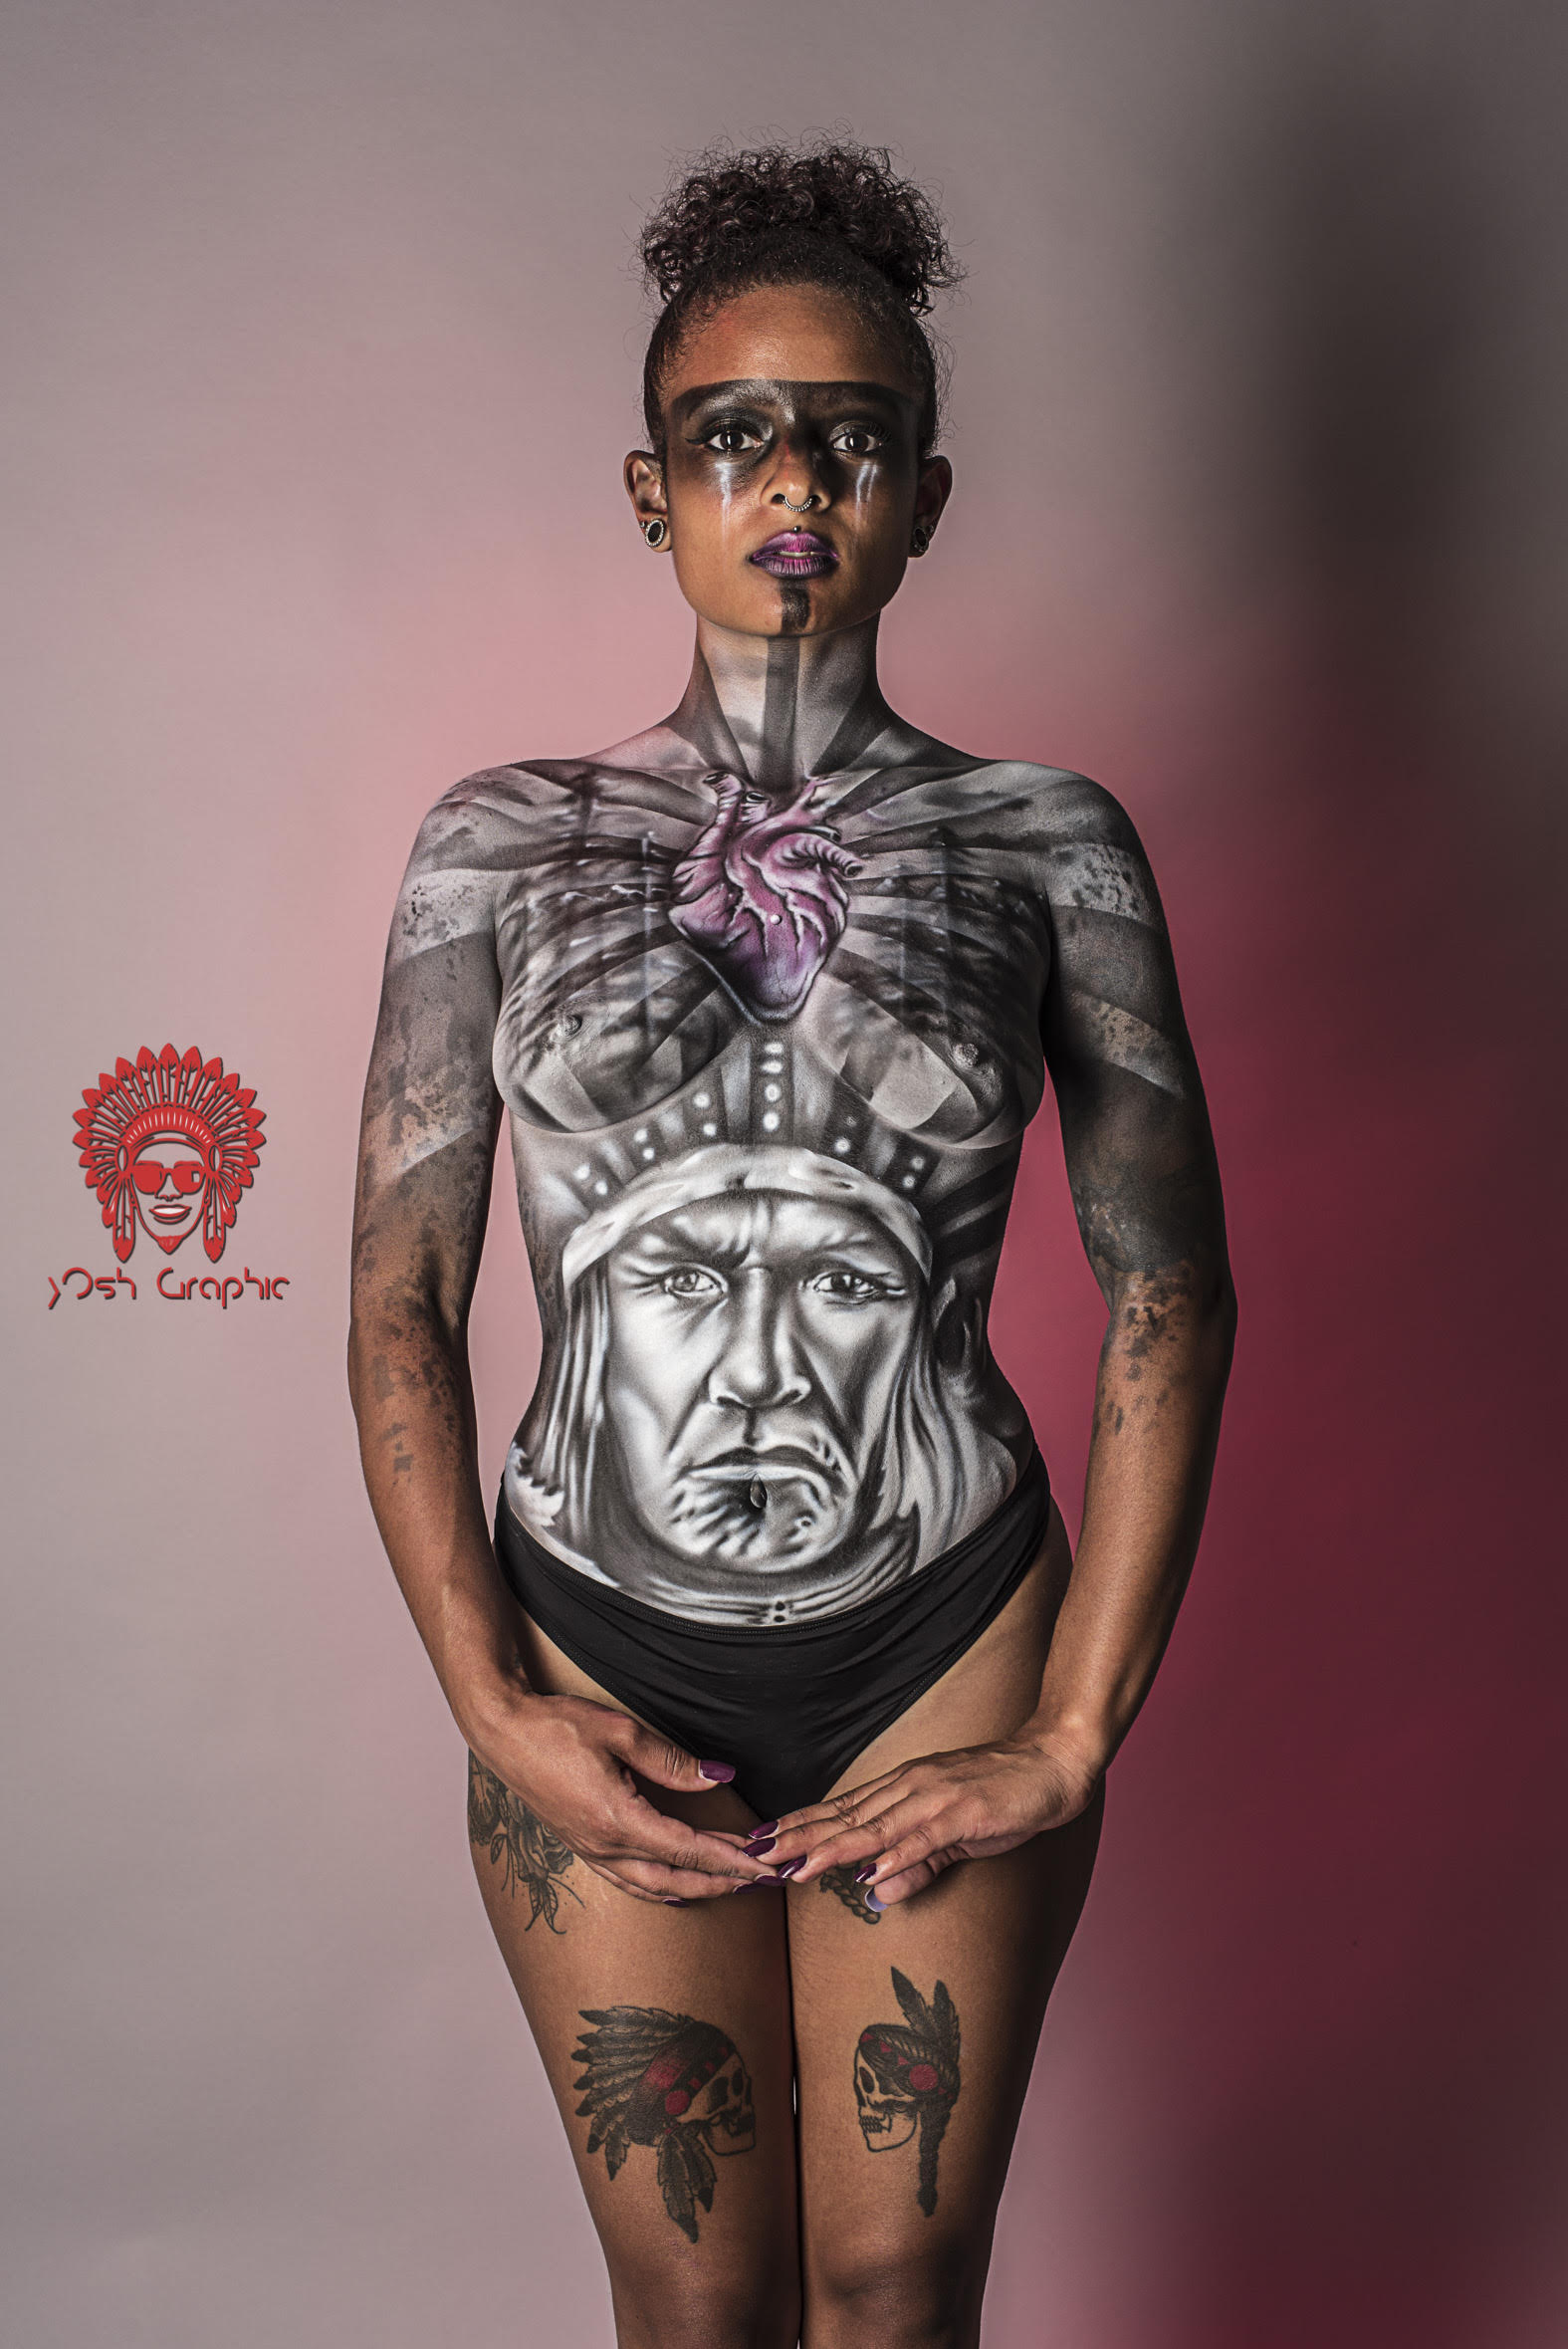 Steek Artiste Graffeur Steekoner Bodypainter Bodypainting